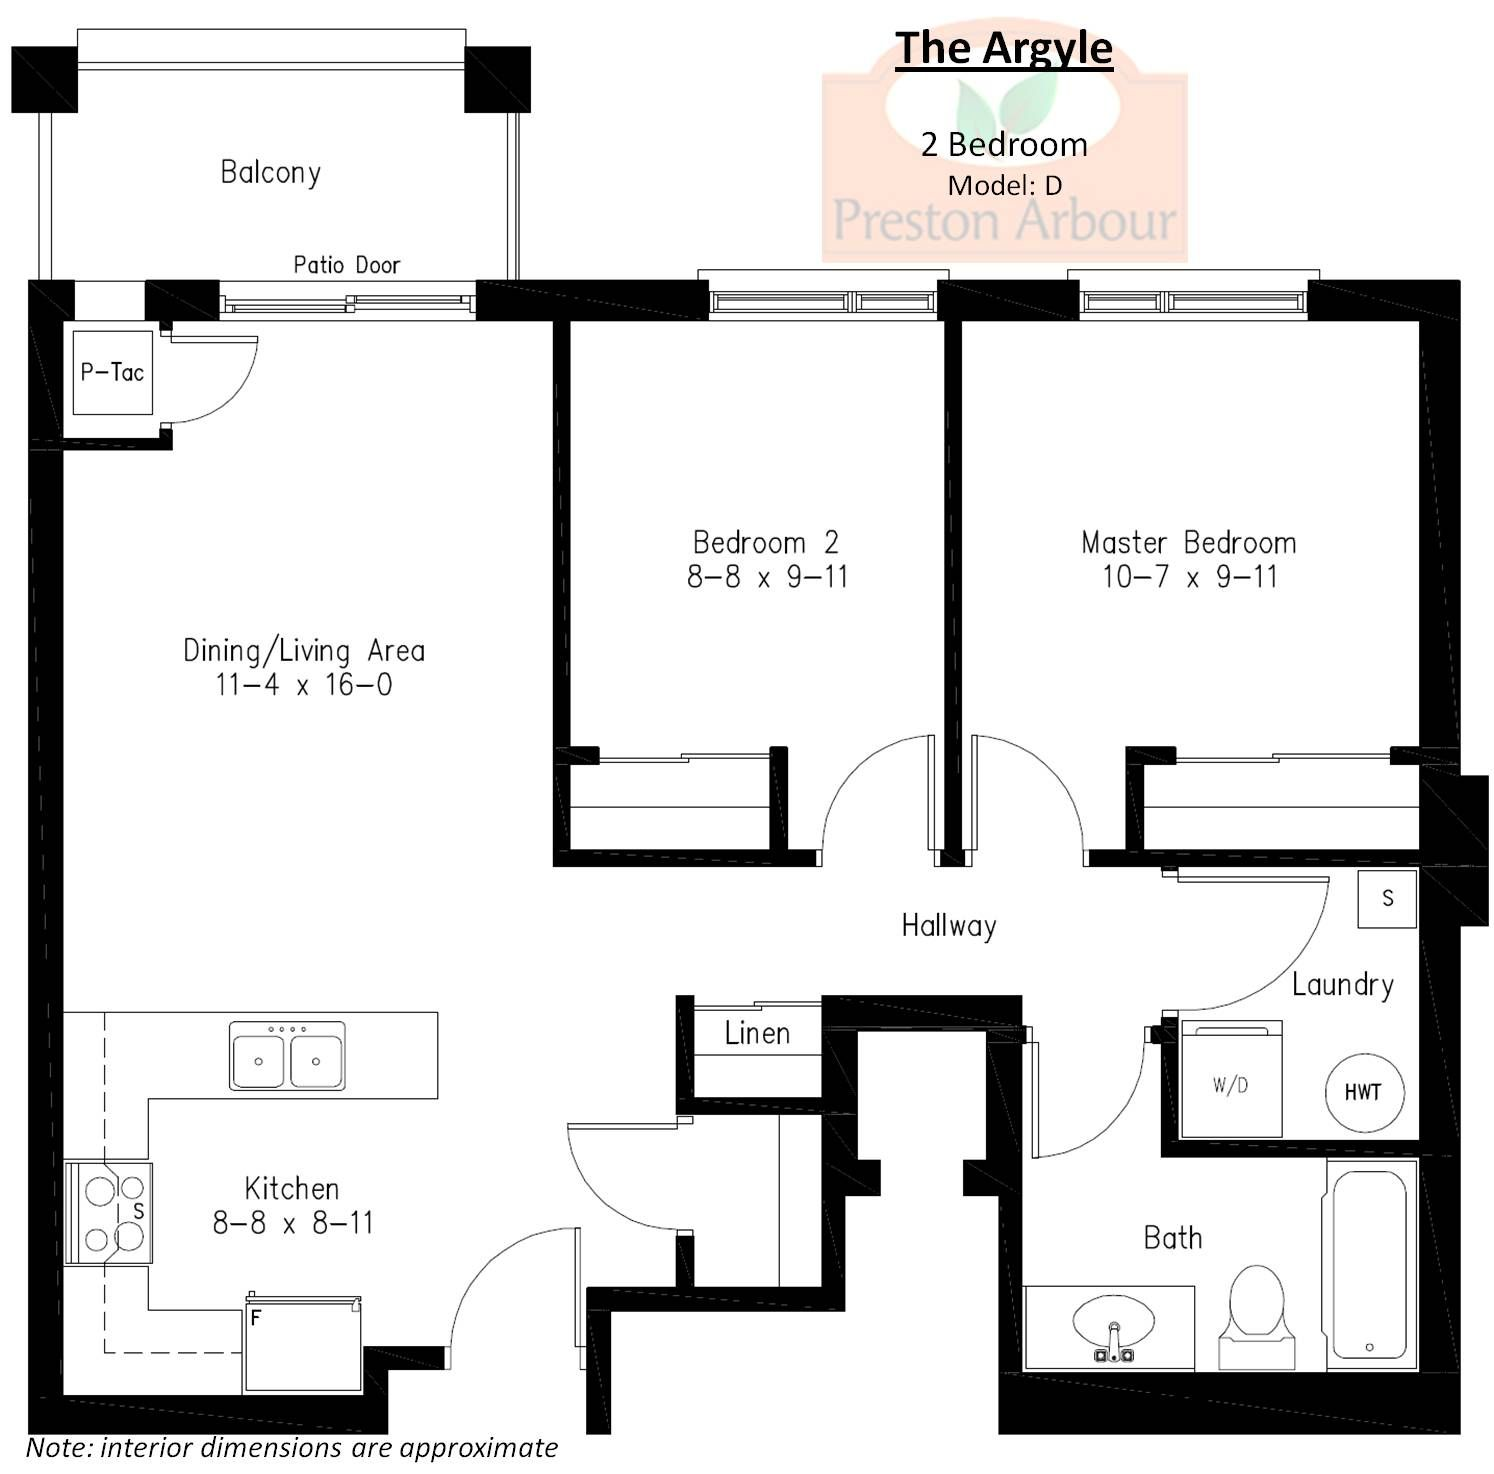 Free house floor plan design software blueprint maker online free free house floor plan design software blueprint maker online free malvernweather Images